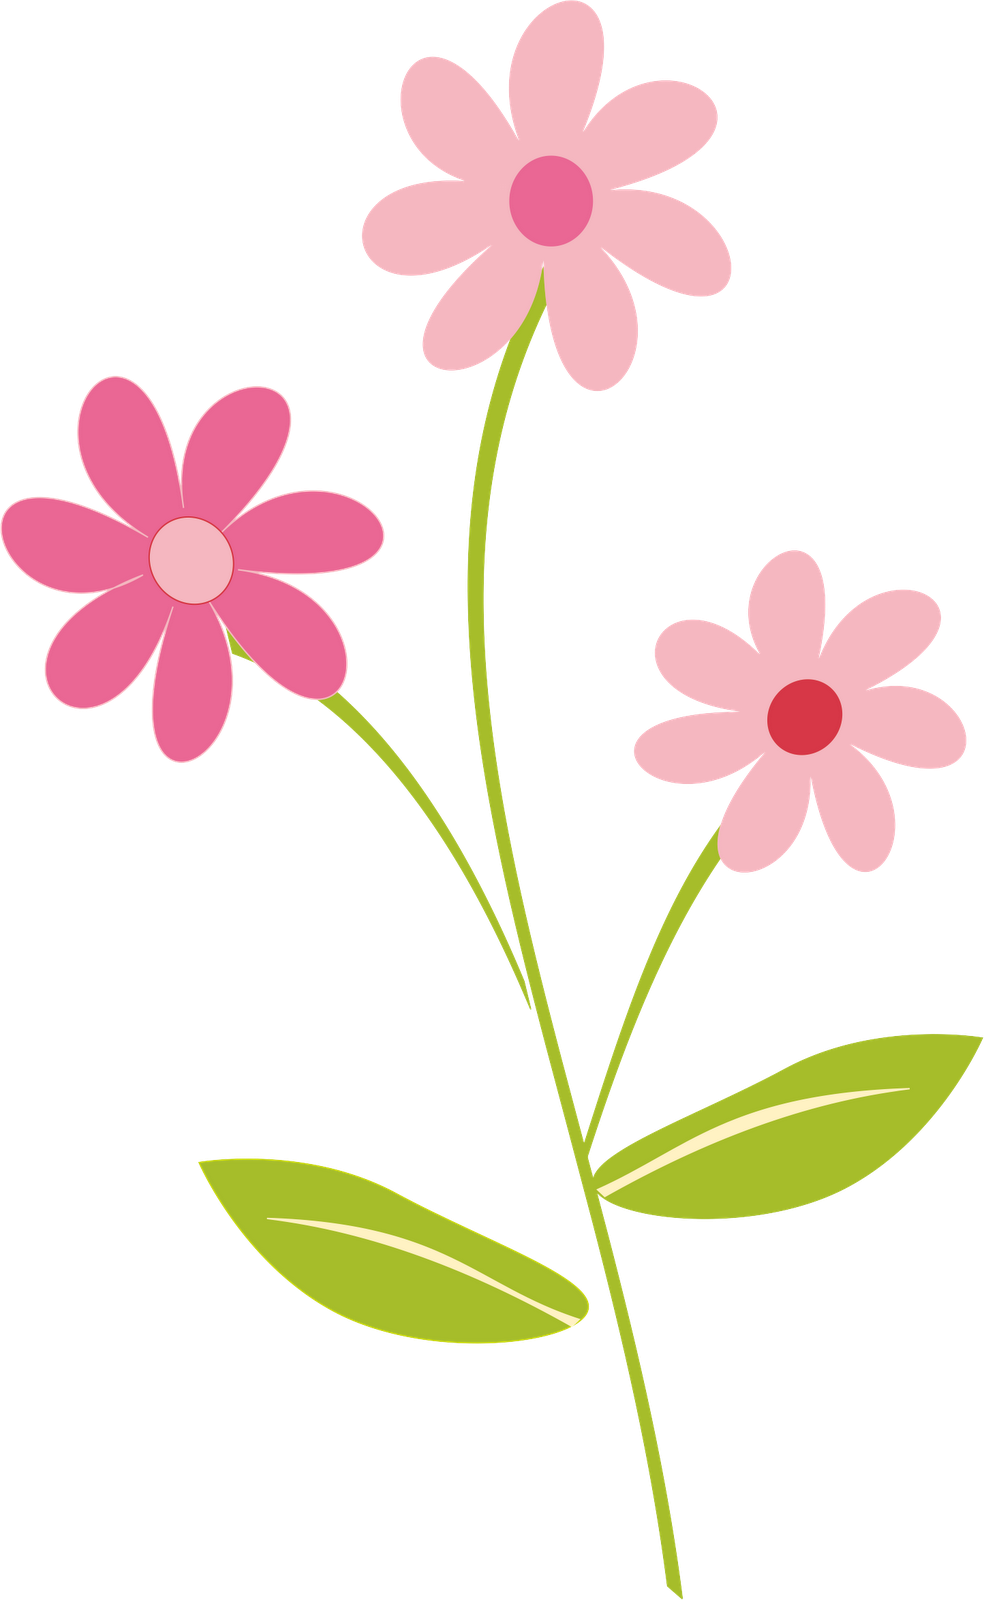 Images spring flowers clipart images gallery for free.